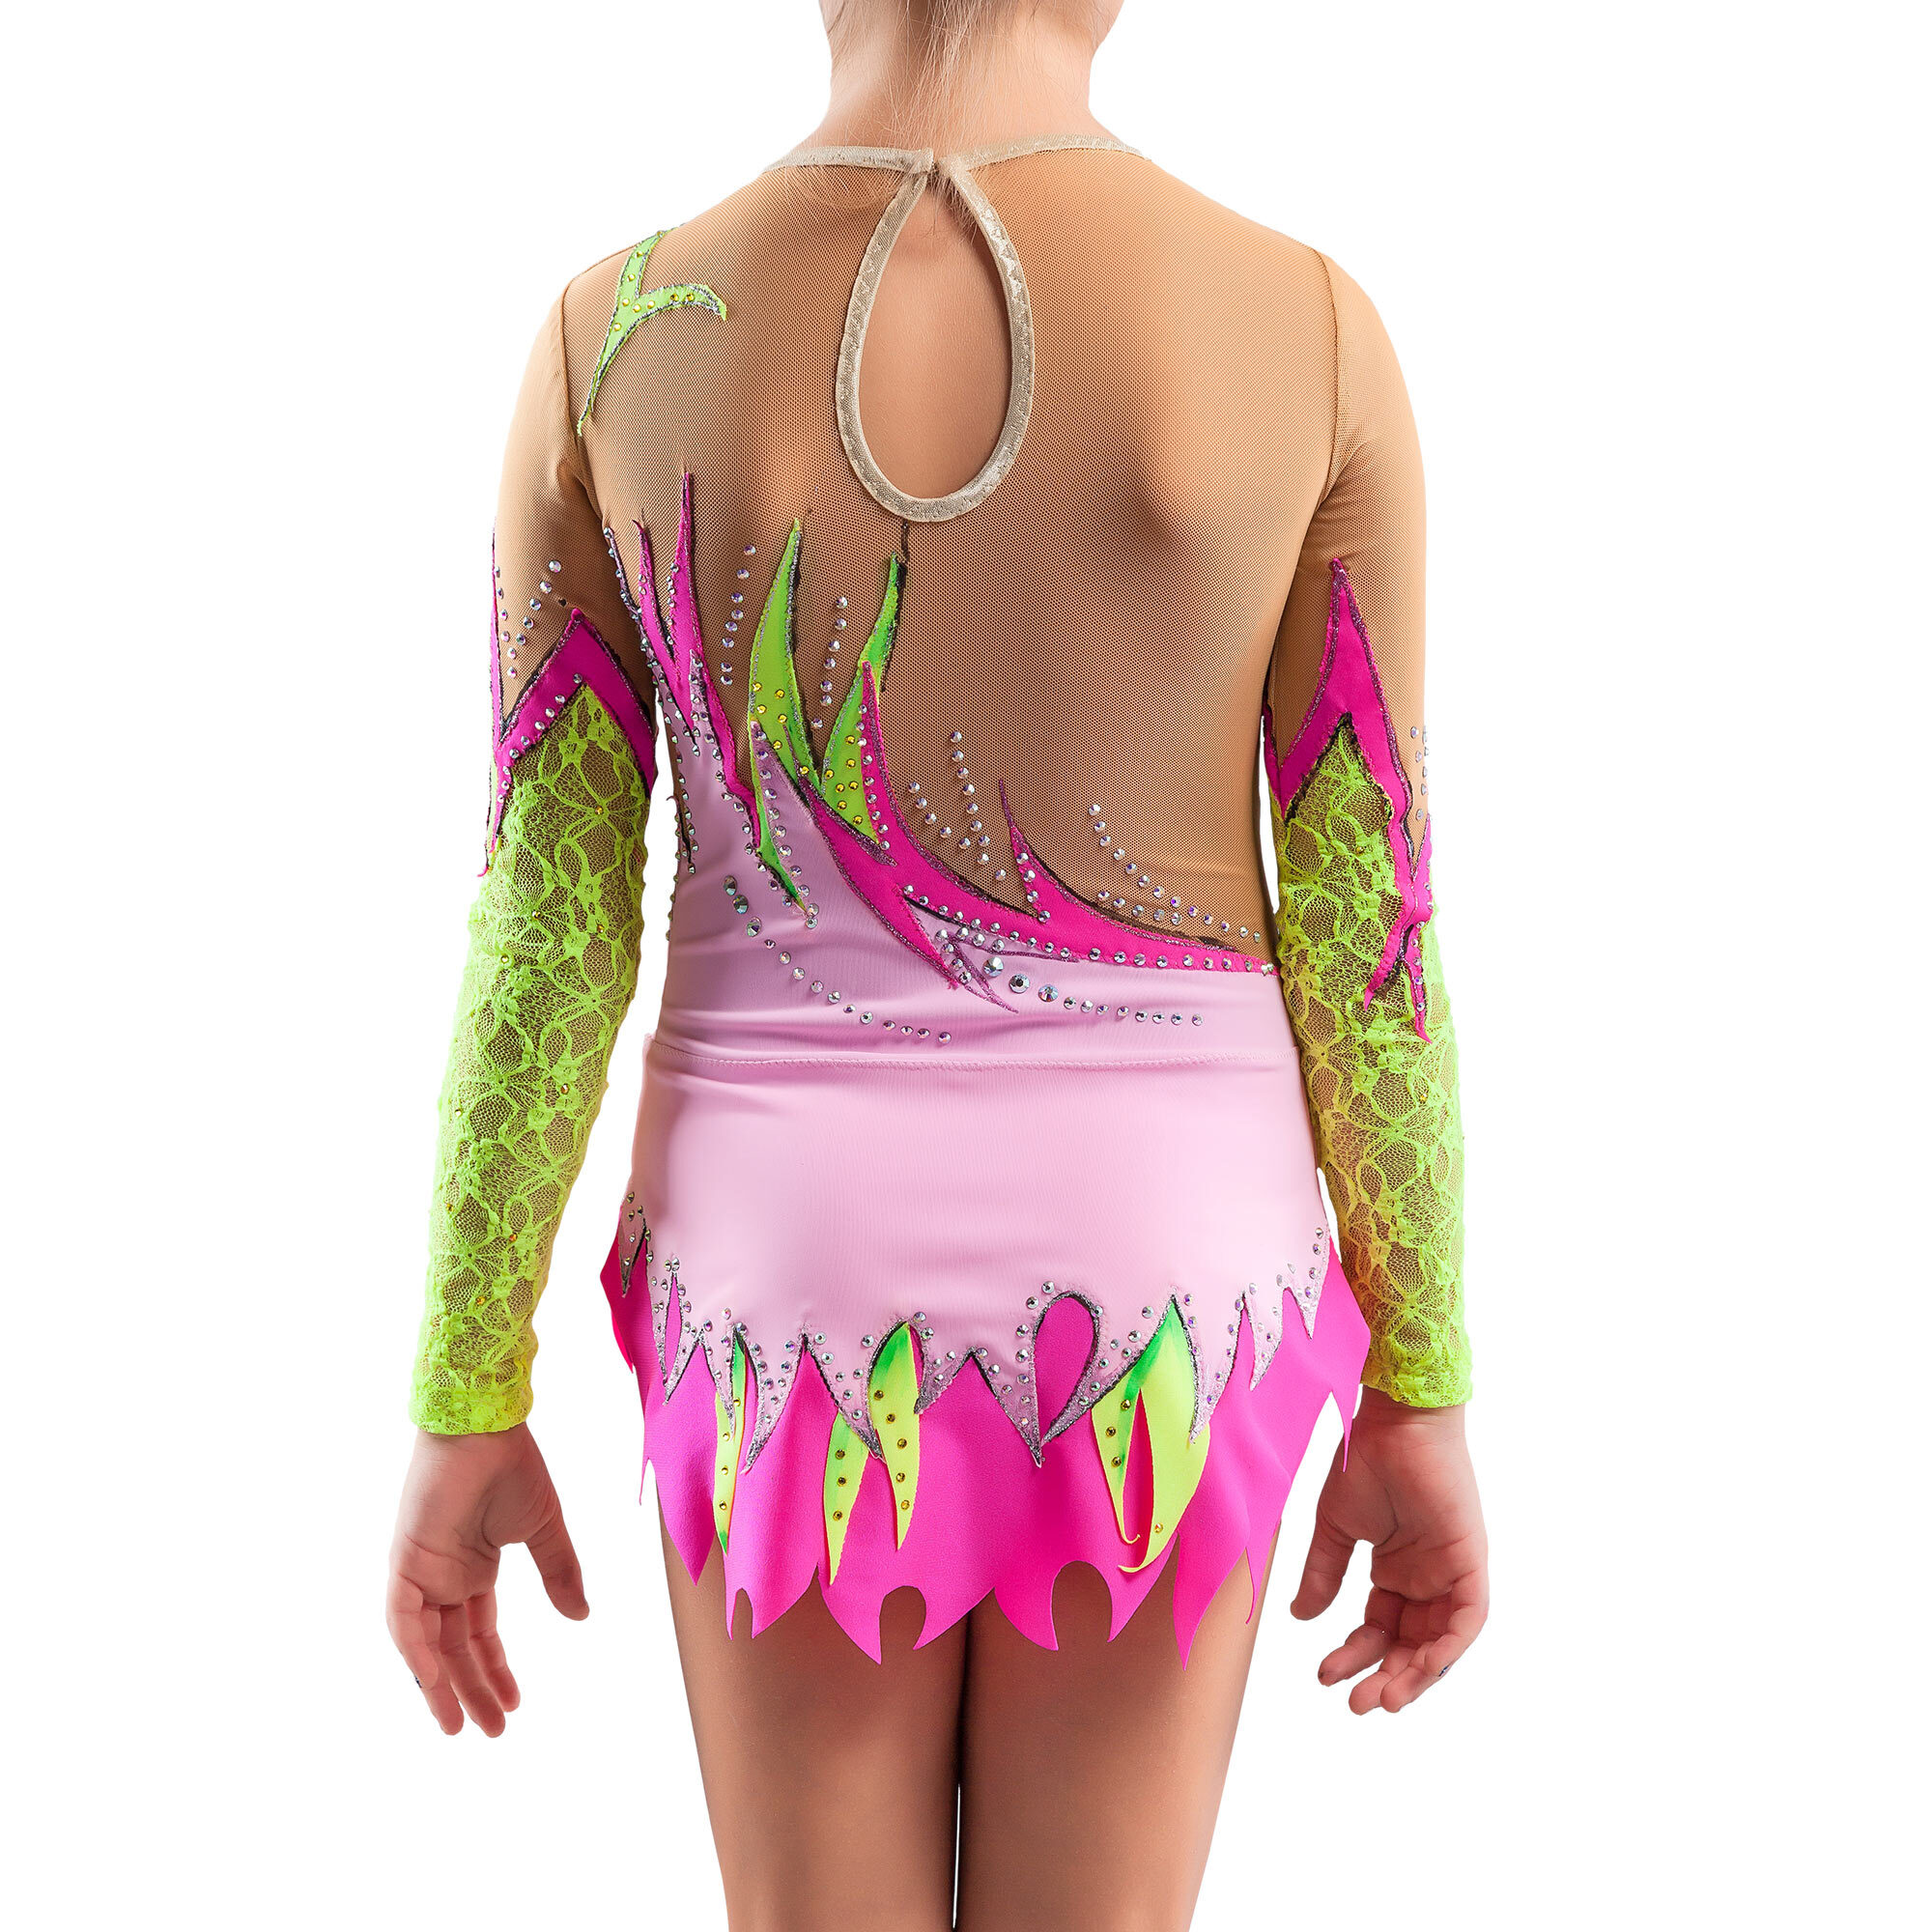 Rhythmic Gymnastics Leotard № 175 could be sewn as Dress Rhythmic Gymnastics, Ice Figure Skating Dress, Costume Acrobatic Gymnastics, Baton Twirling or Dance Leotard Suit. Colorful suit with lace